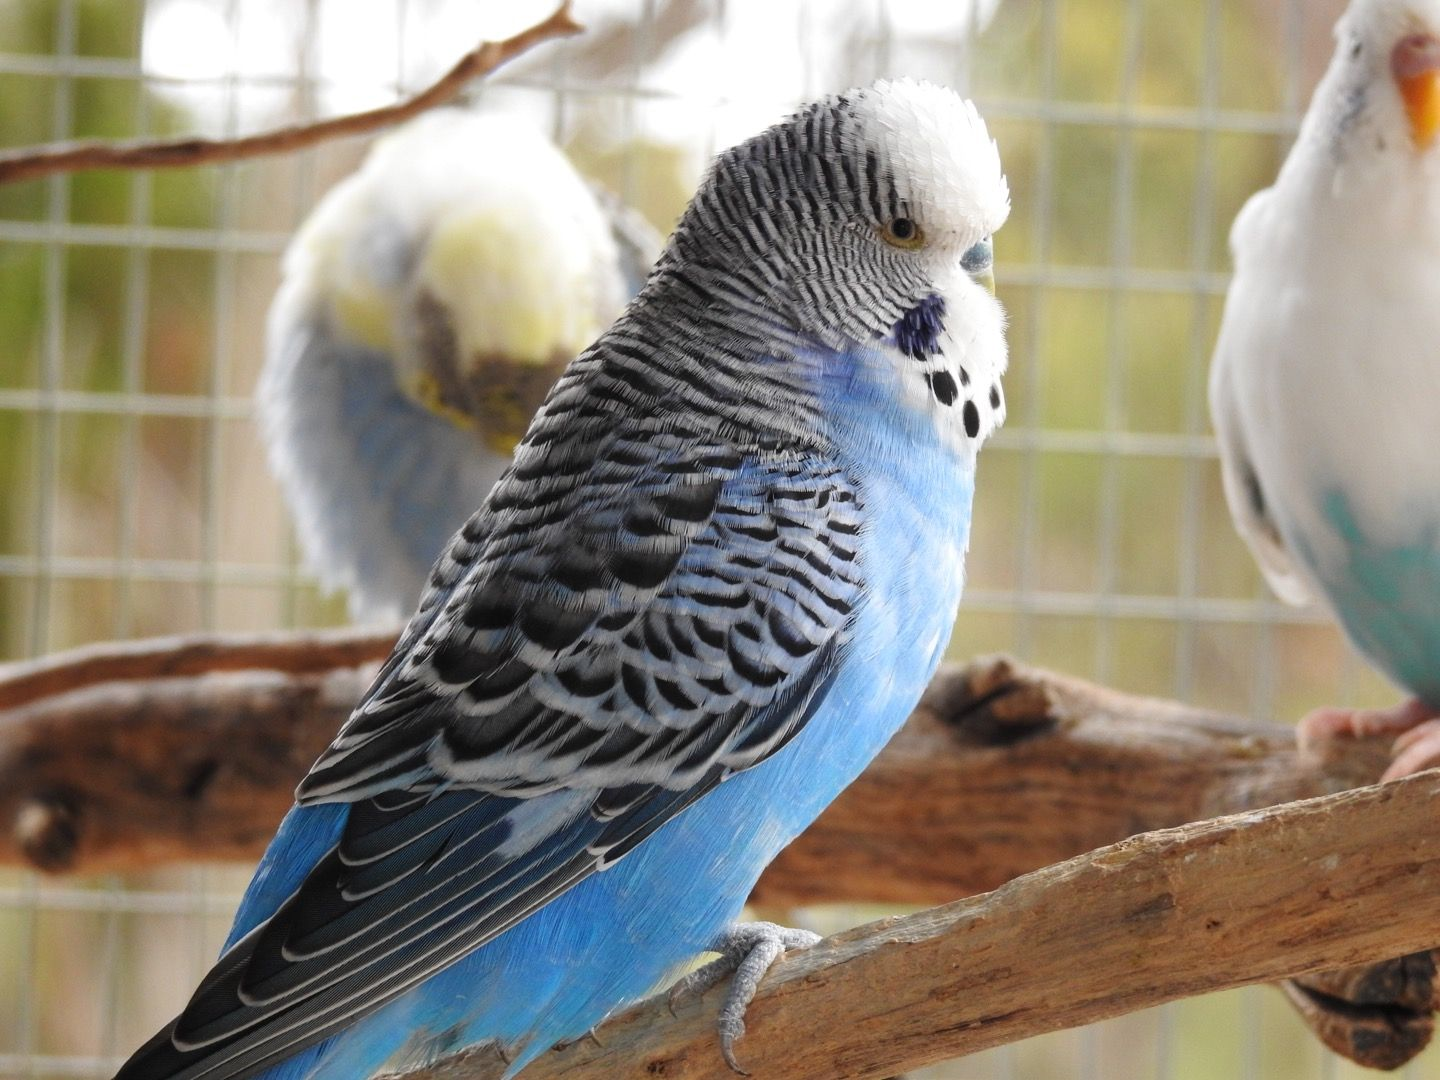 Normal Blue Male Budgie Normalbluebudgie Budgie Bluebudgie English Budgie Budgies Blue Budgie